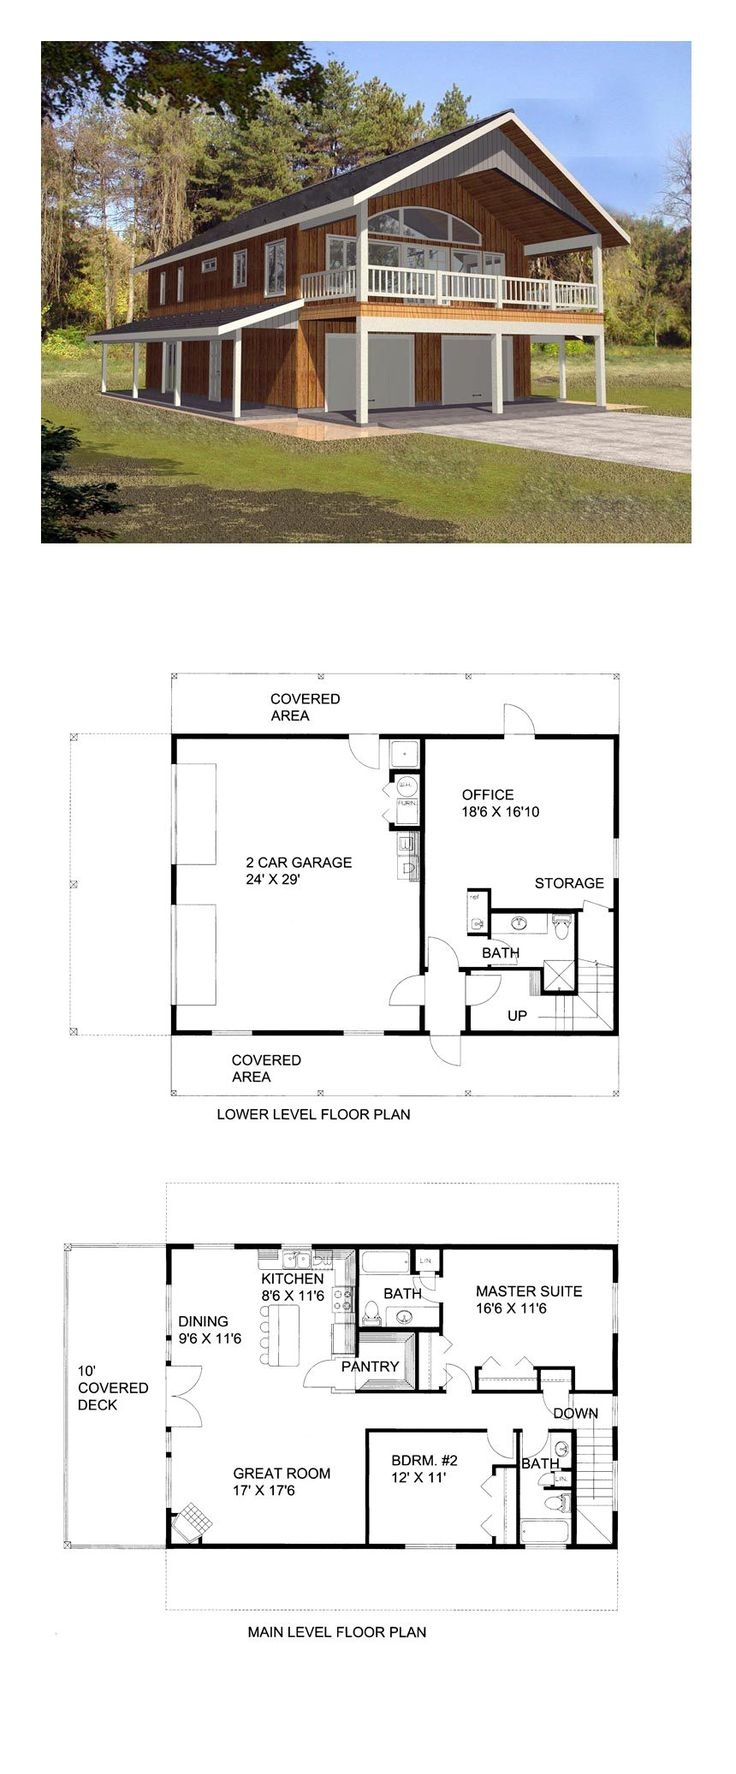 49 best images about garage apartment plans on pinterest for Garage plans with apartment one level